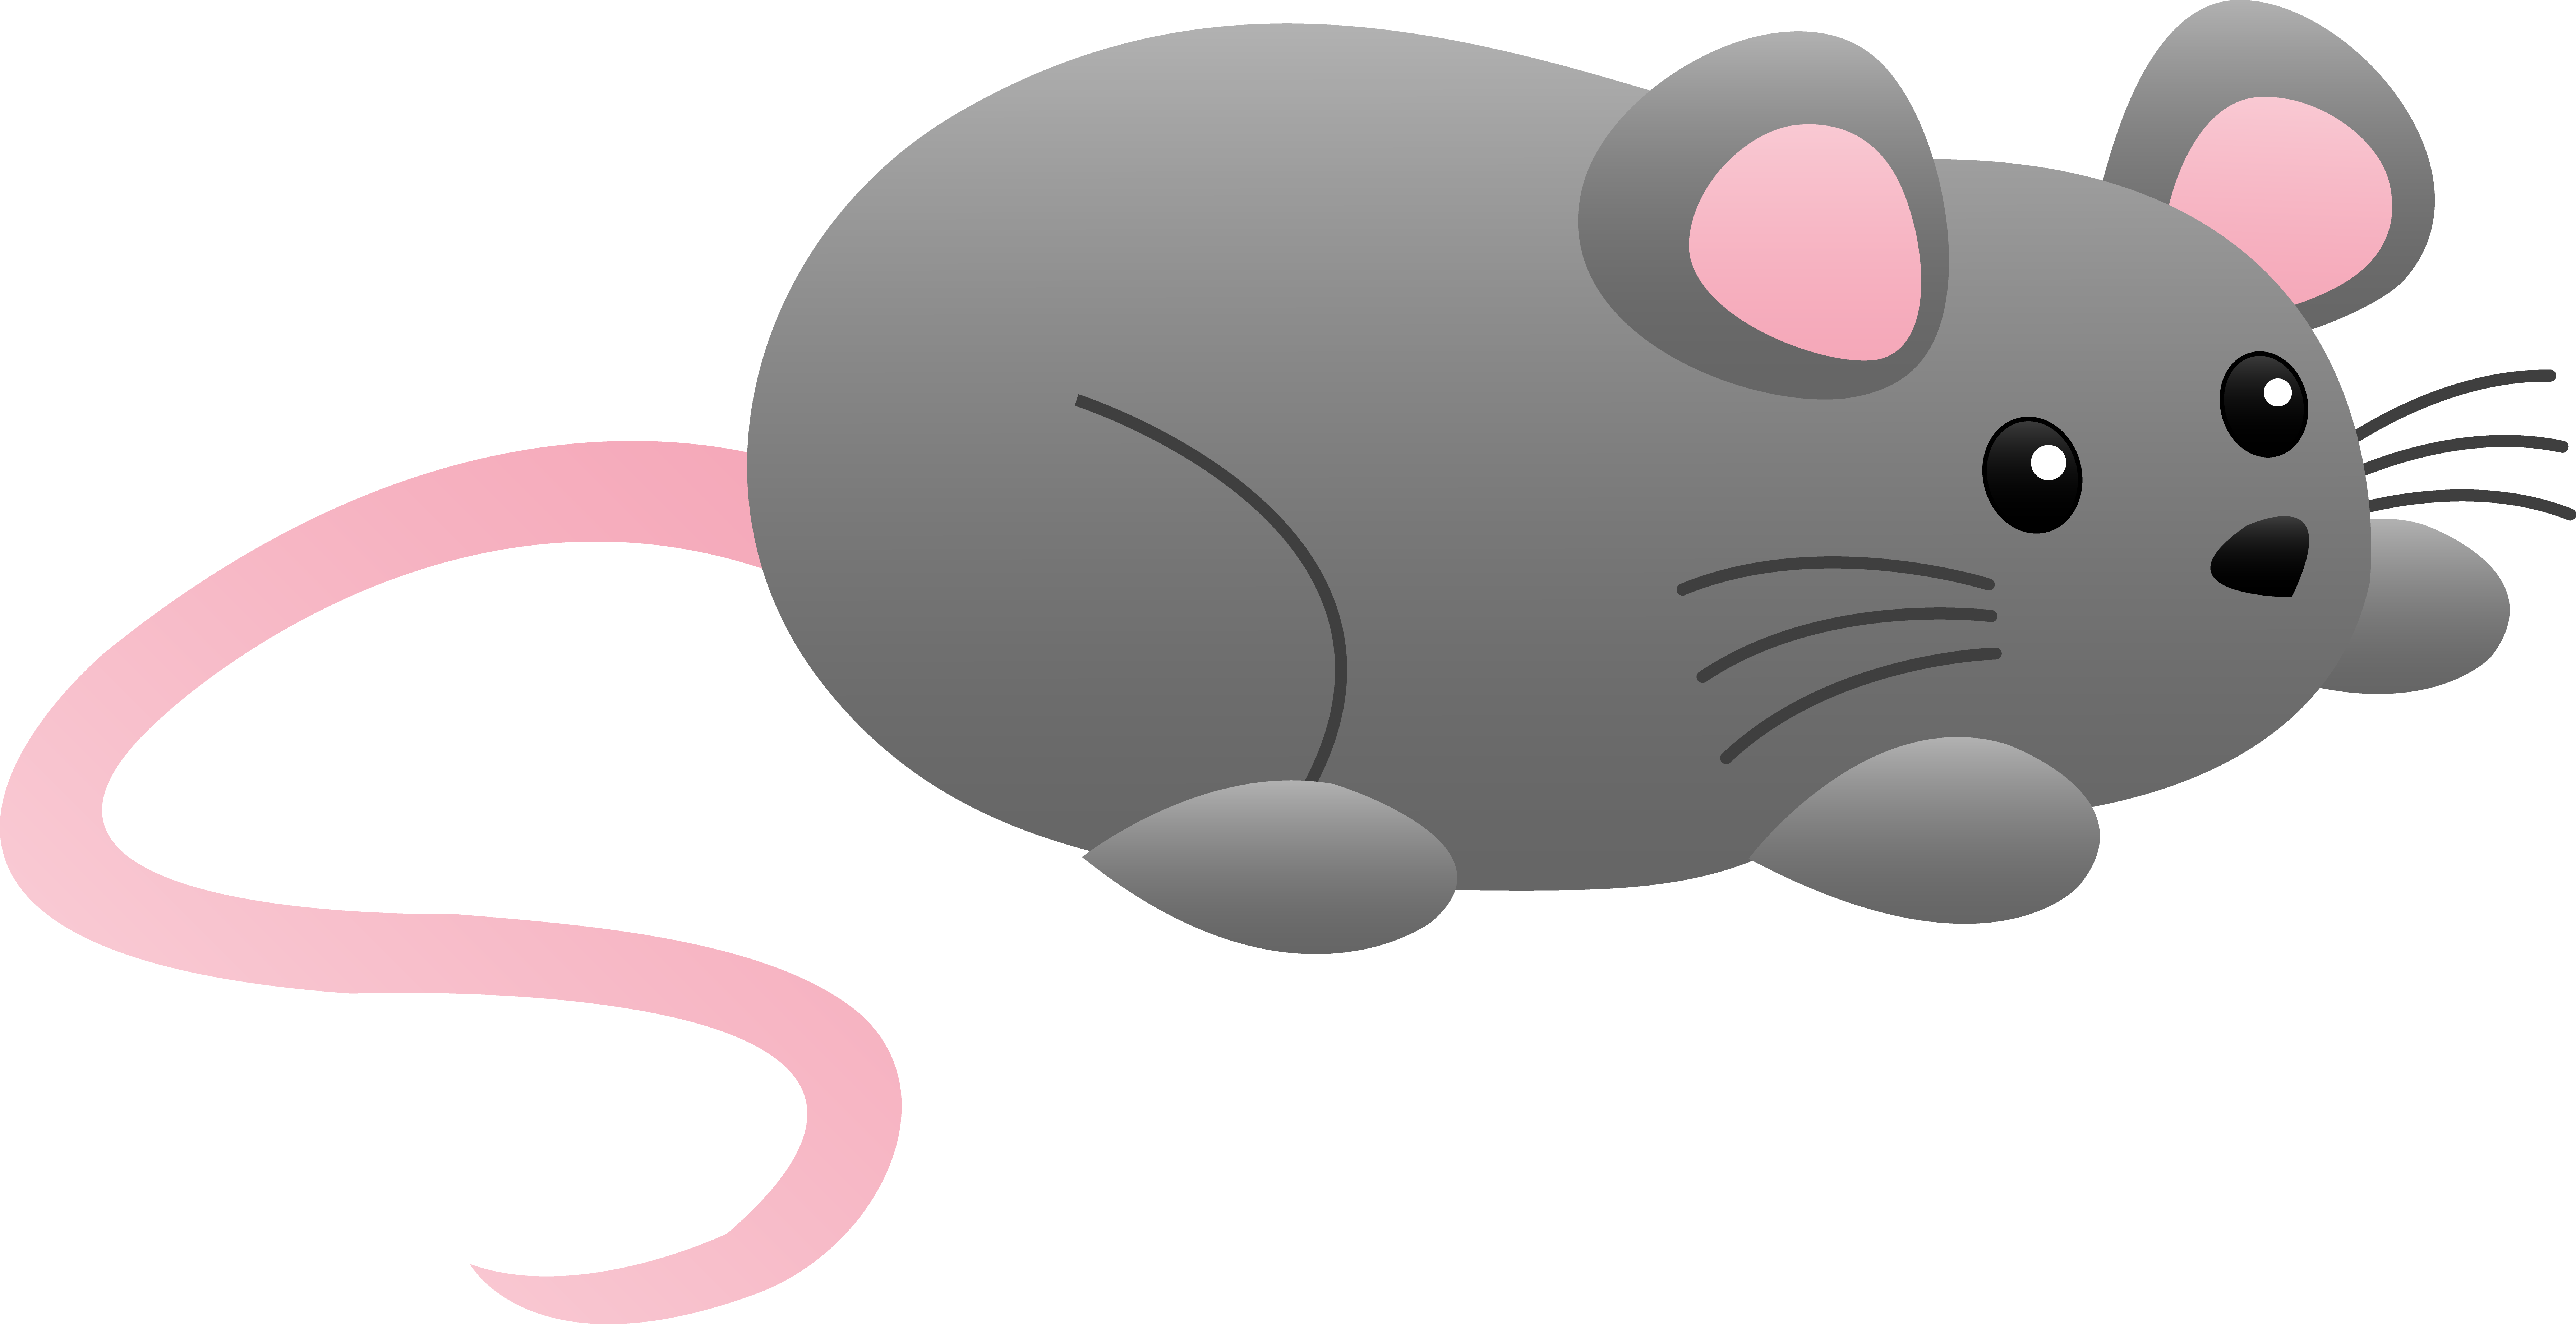 Mice clipart #2, Download drawings